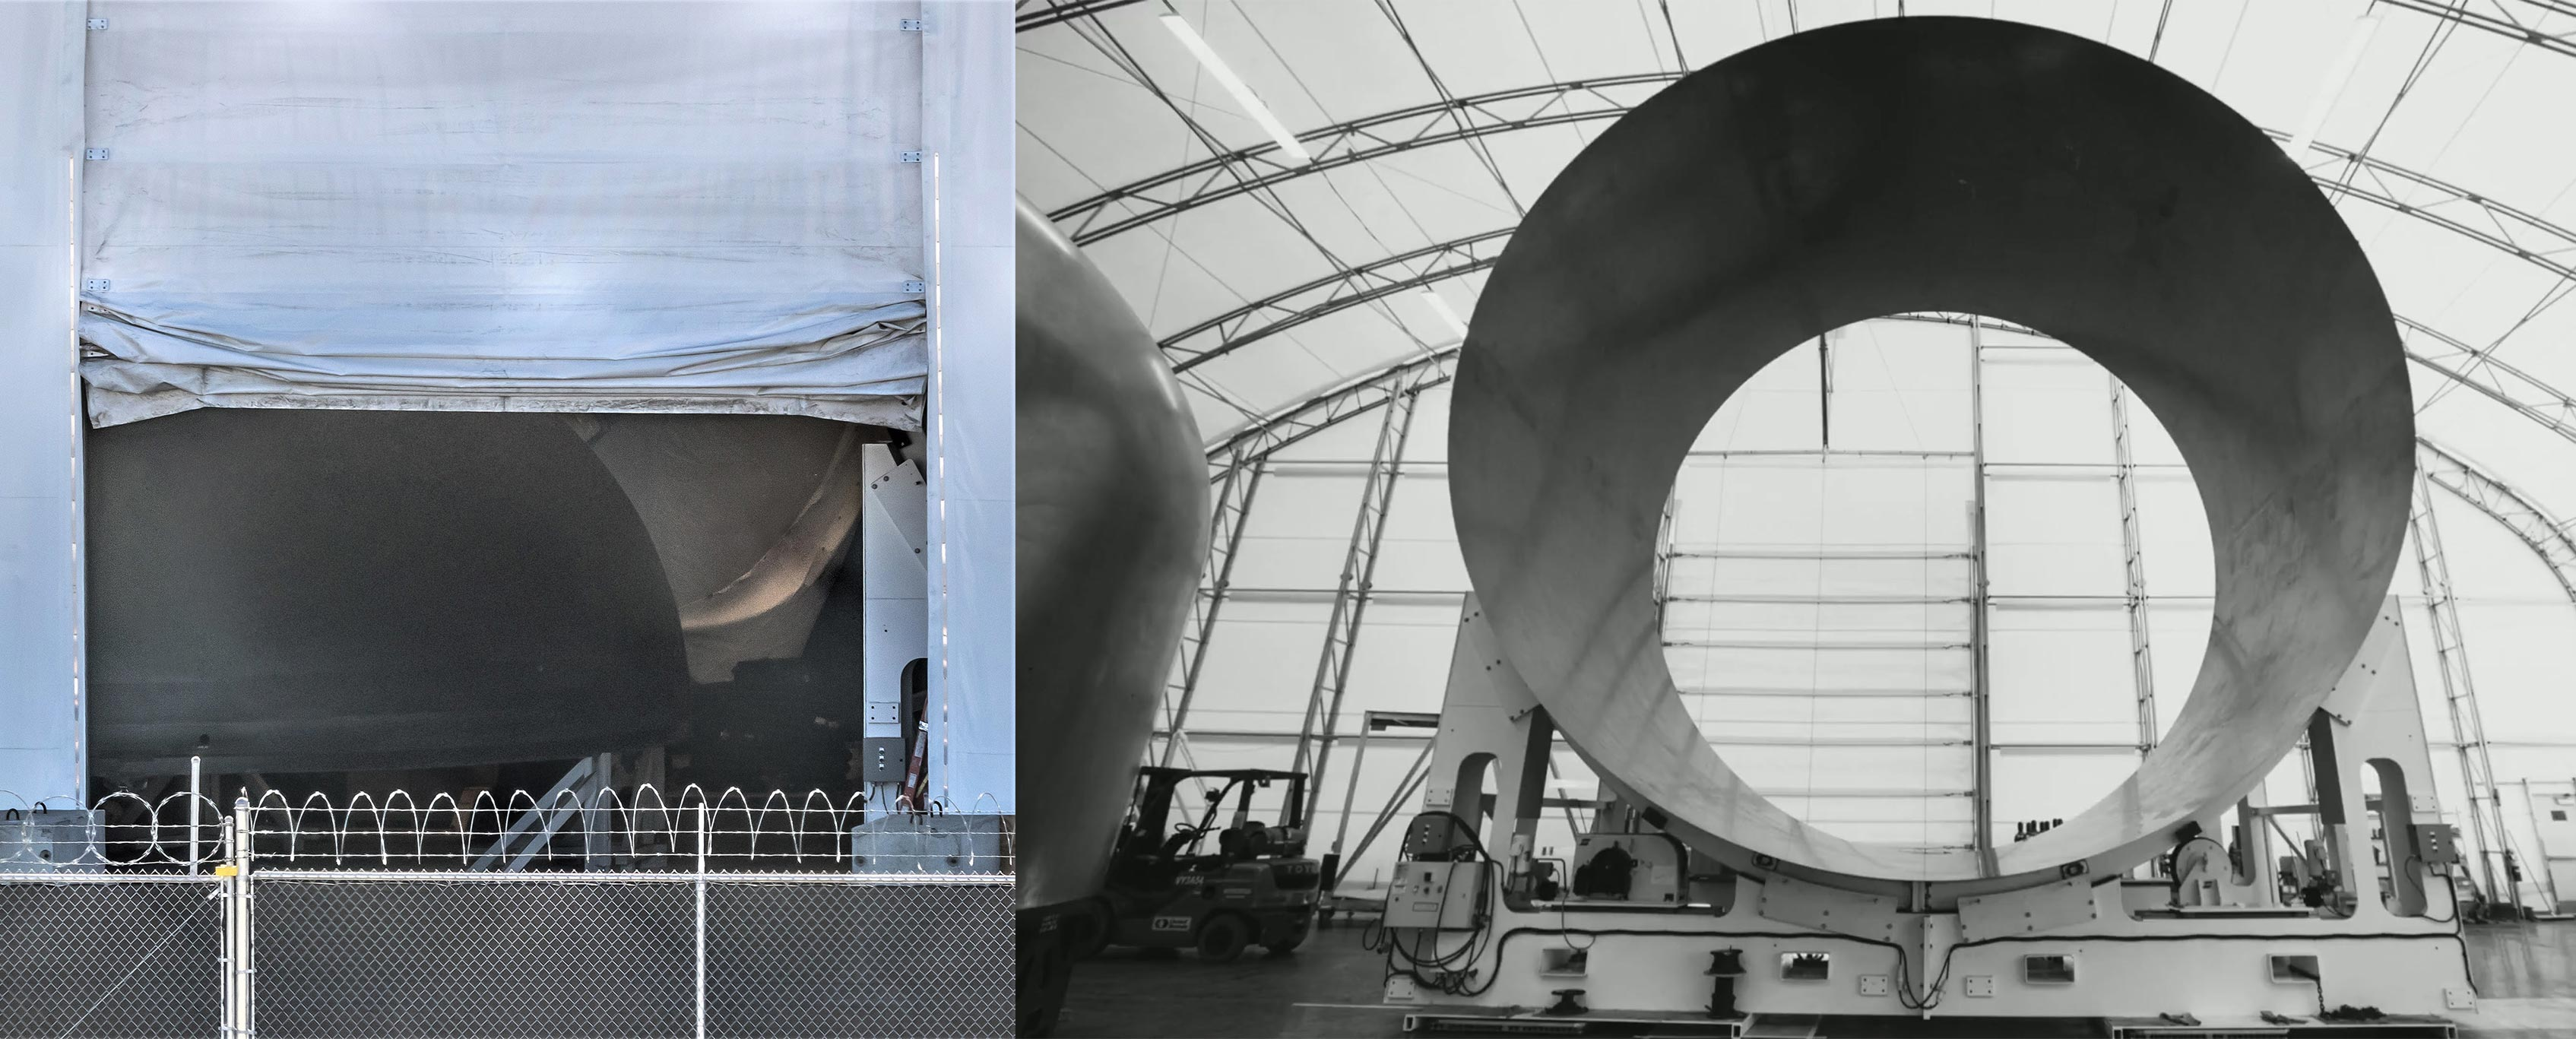 Spacex S Next Big Bfr Spaceship Part Finished In Port Of